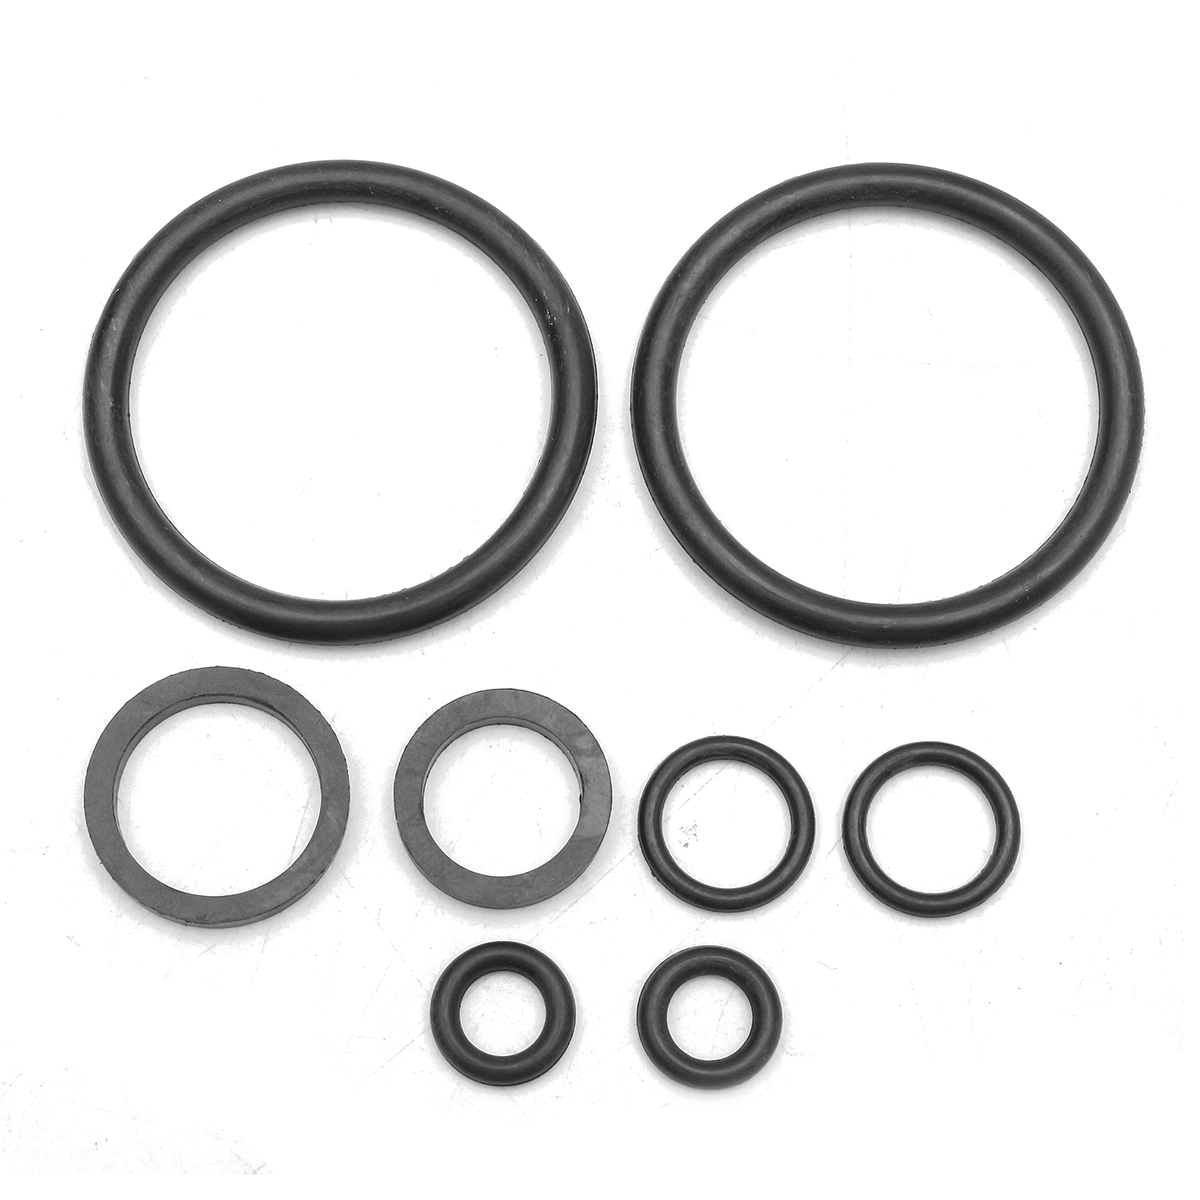 70cc Cylinder Piston Gasket Rings Motor Kit For Atv Honda